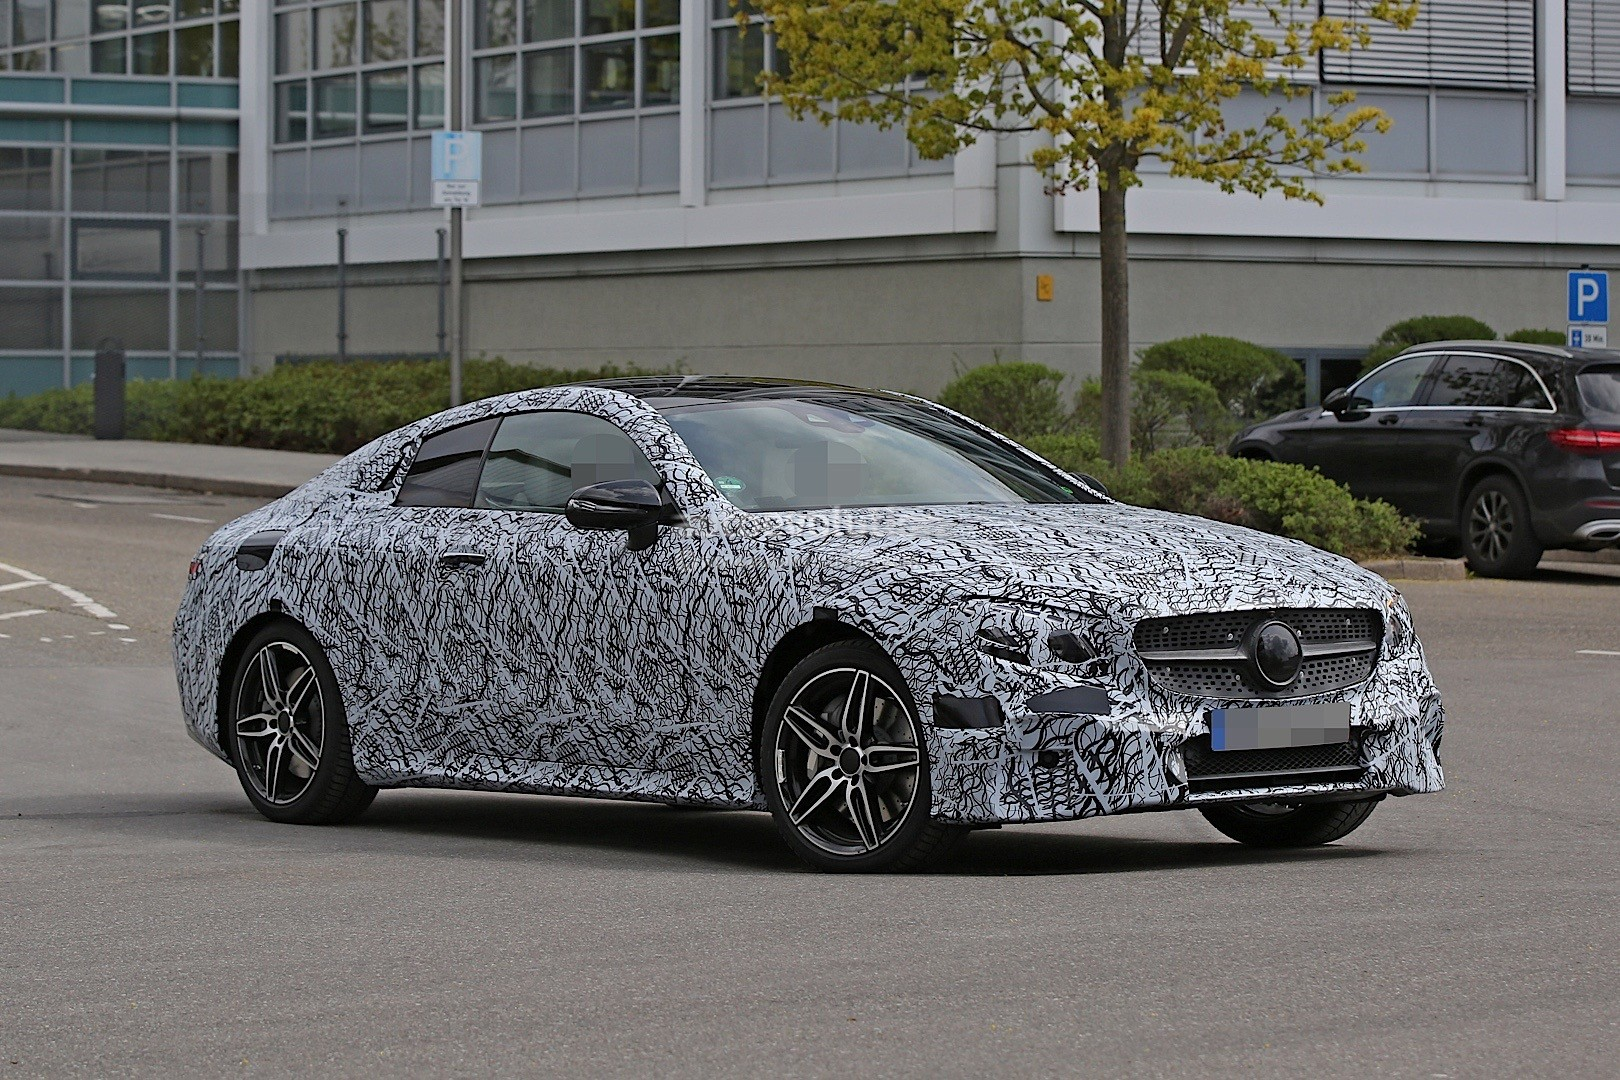 2018 Mercedes Benz S Class Coupe photo - 1